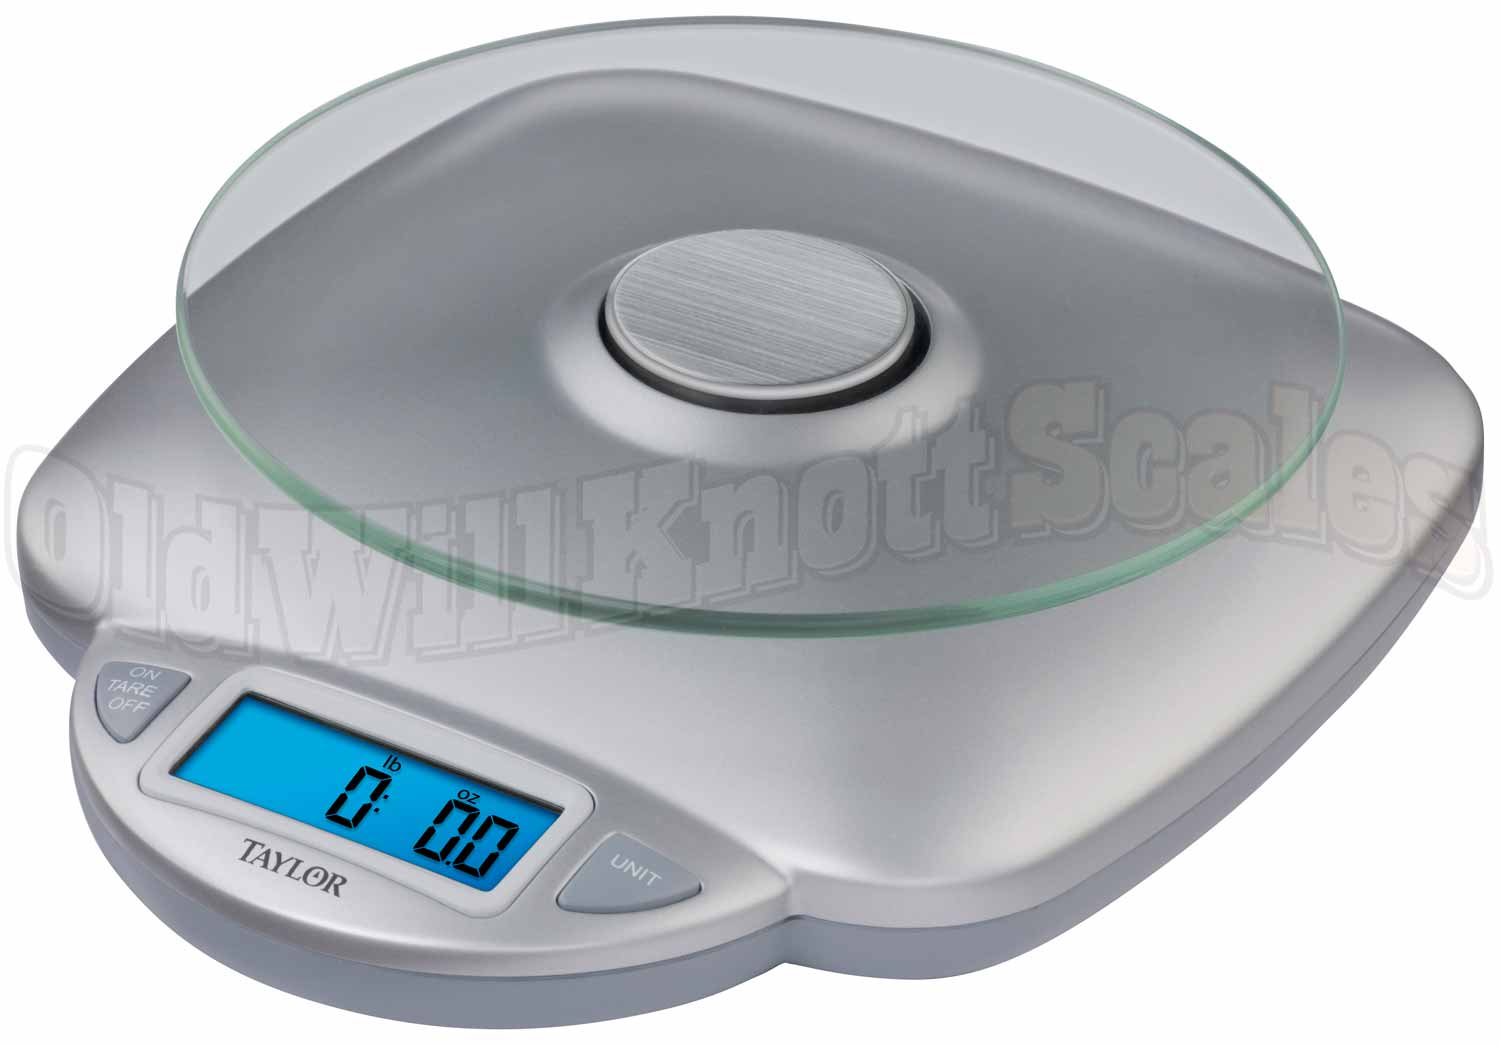 Taylor - 3842 - Digital Kitchen Scale with Round Glass Platform